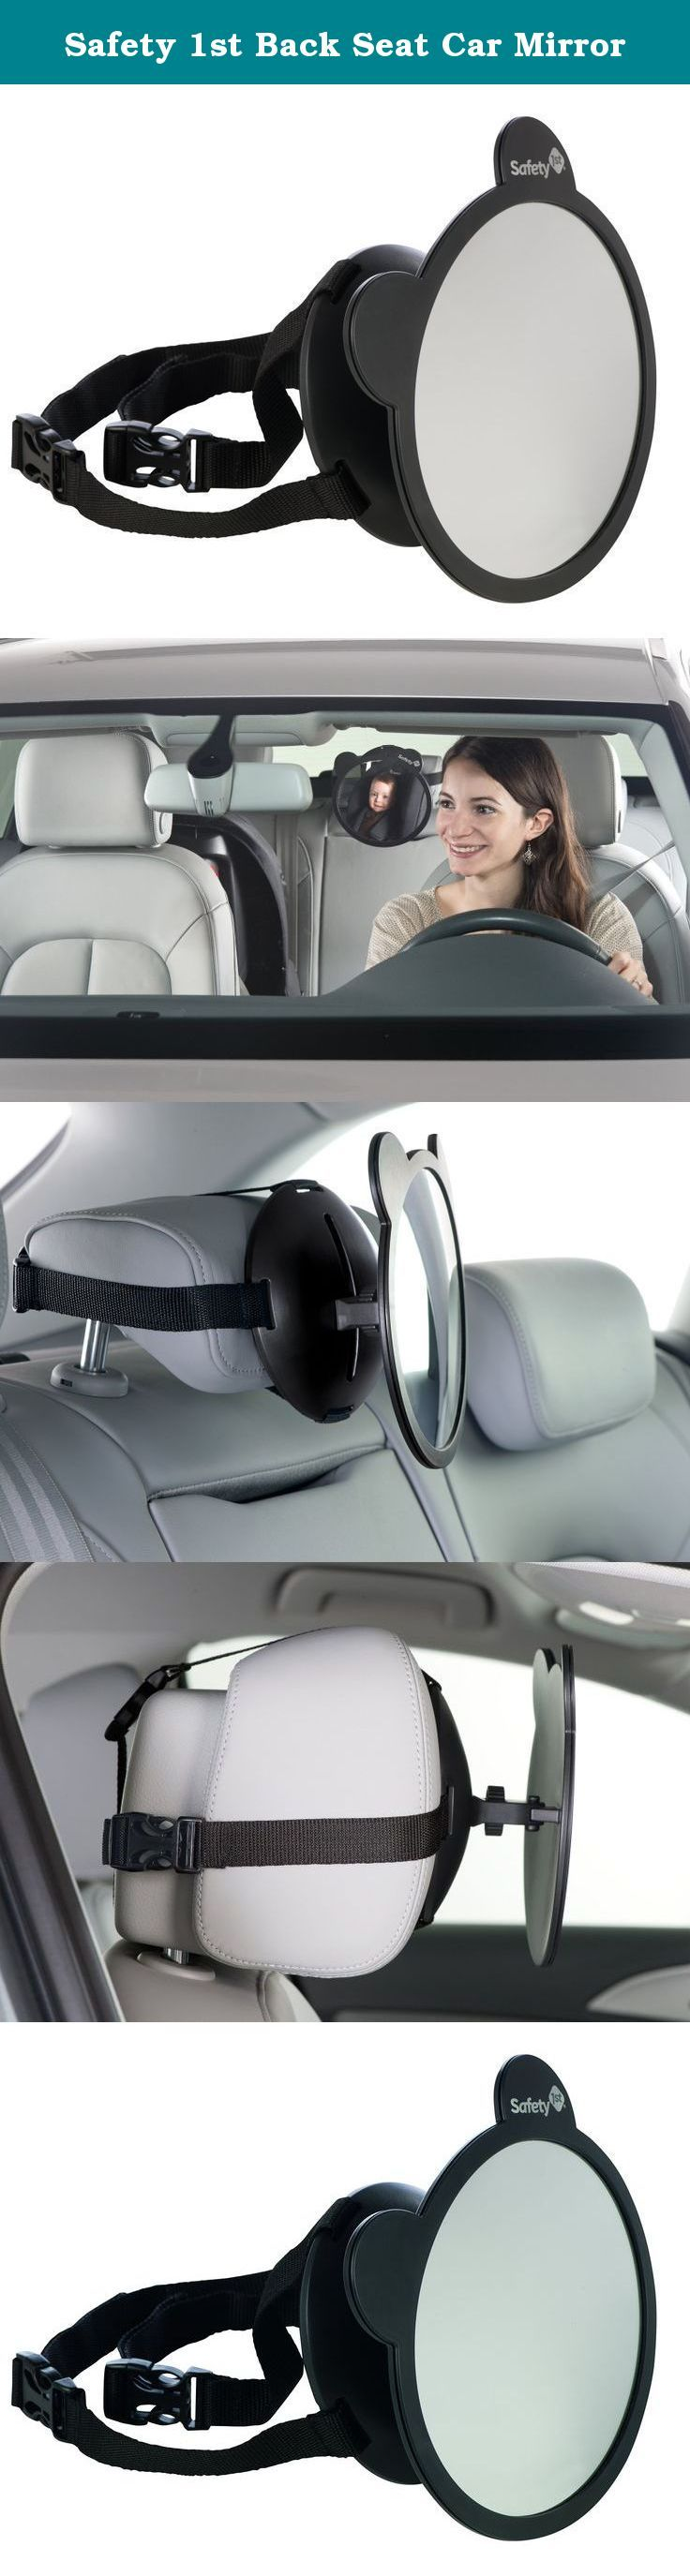 Image result for safety 1st backseat baby mirror